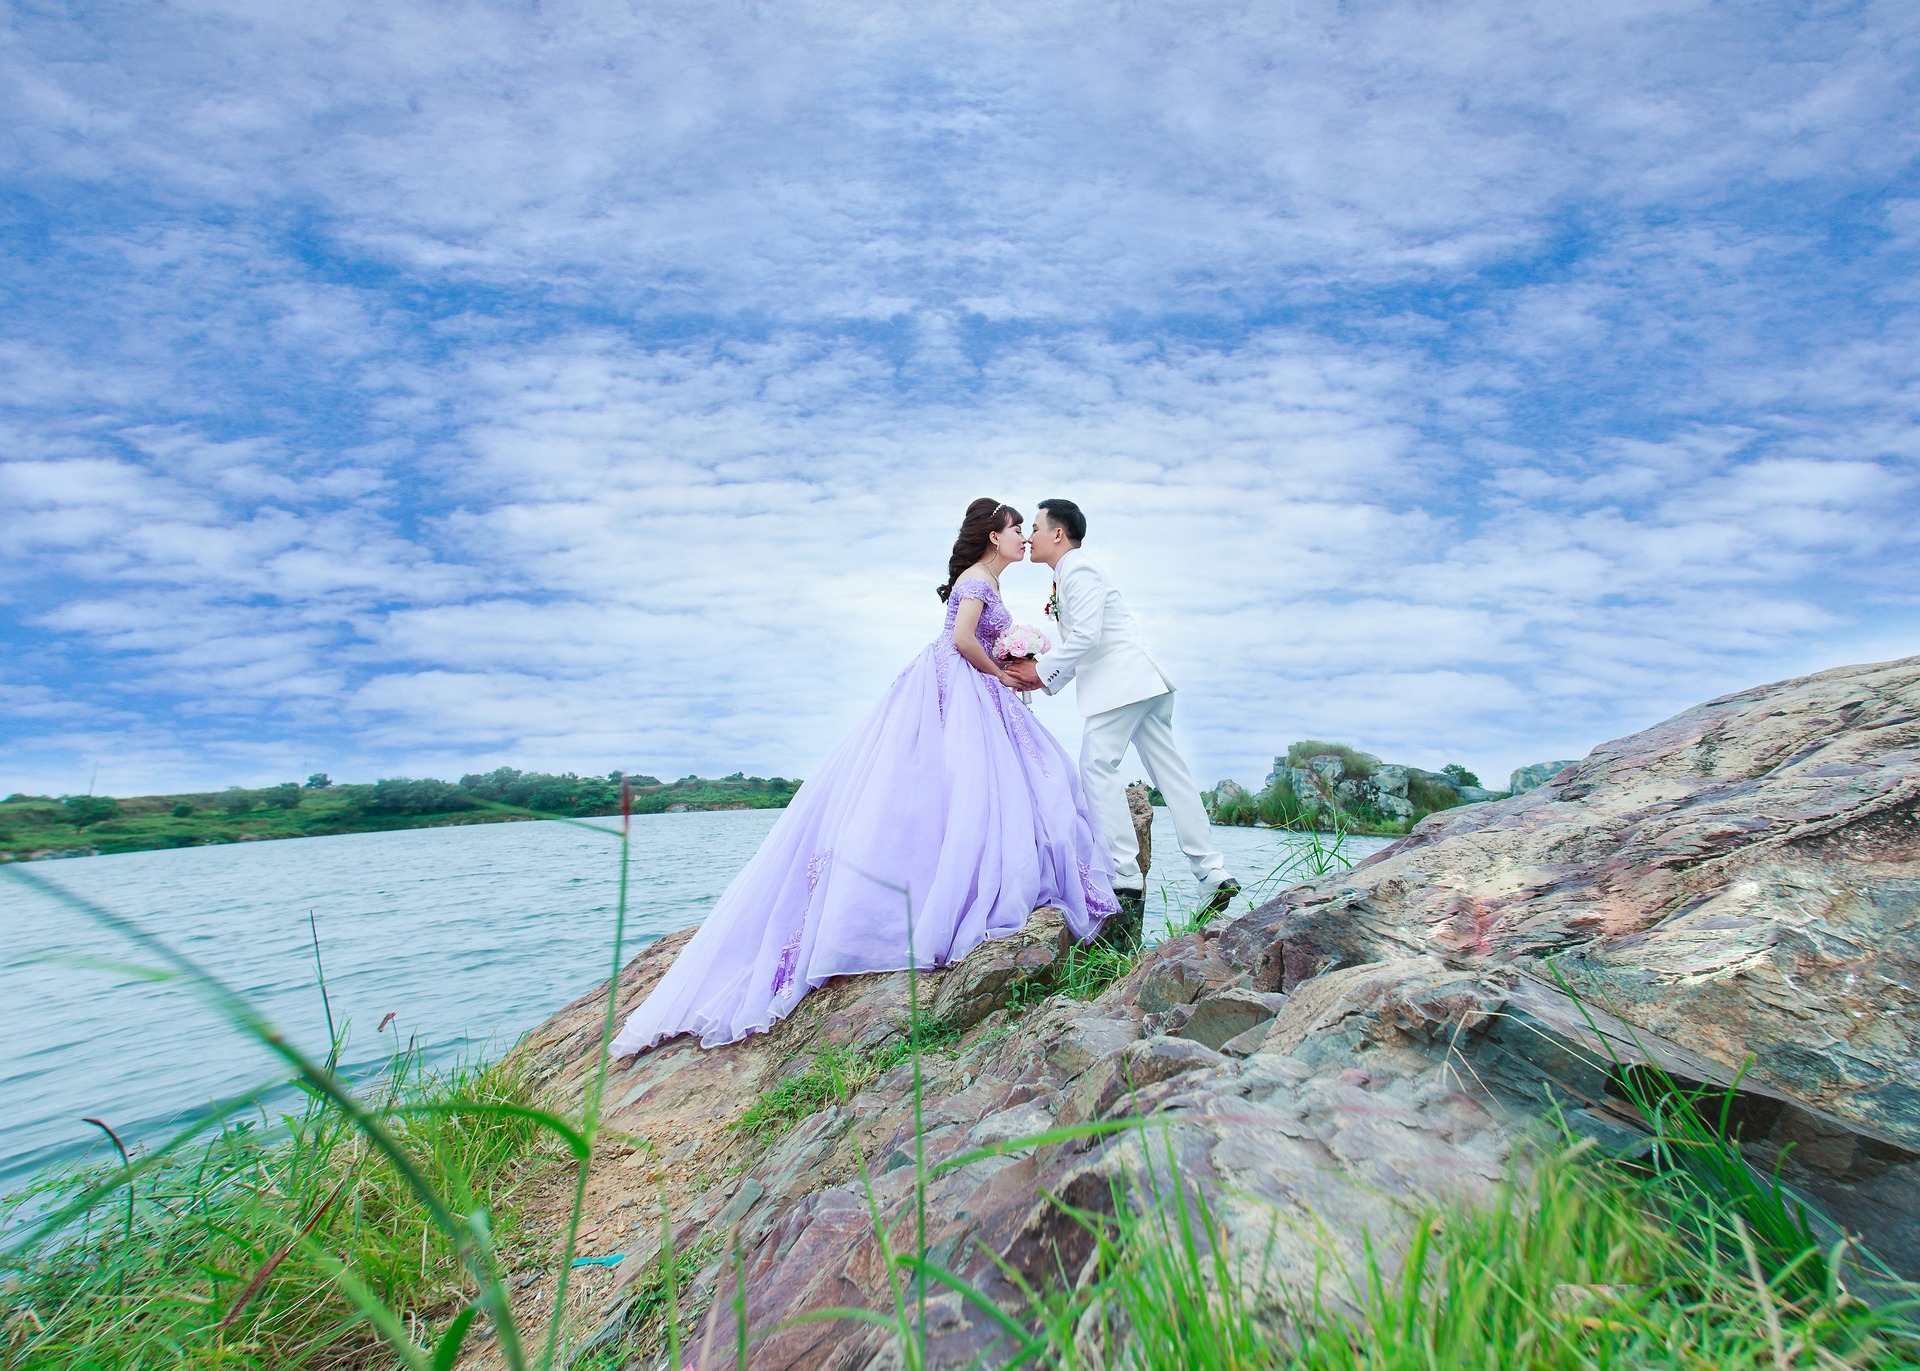 wedding-photo-2490163_1920.jpg?fit=1920%2C1371&ssl=1